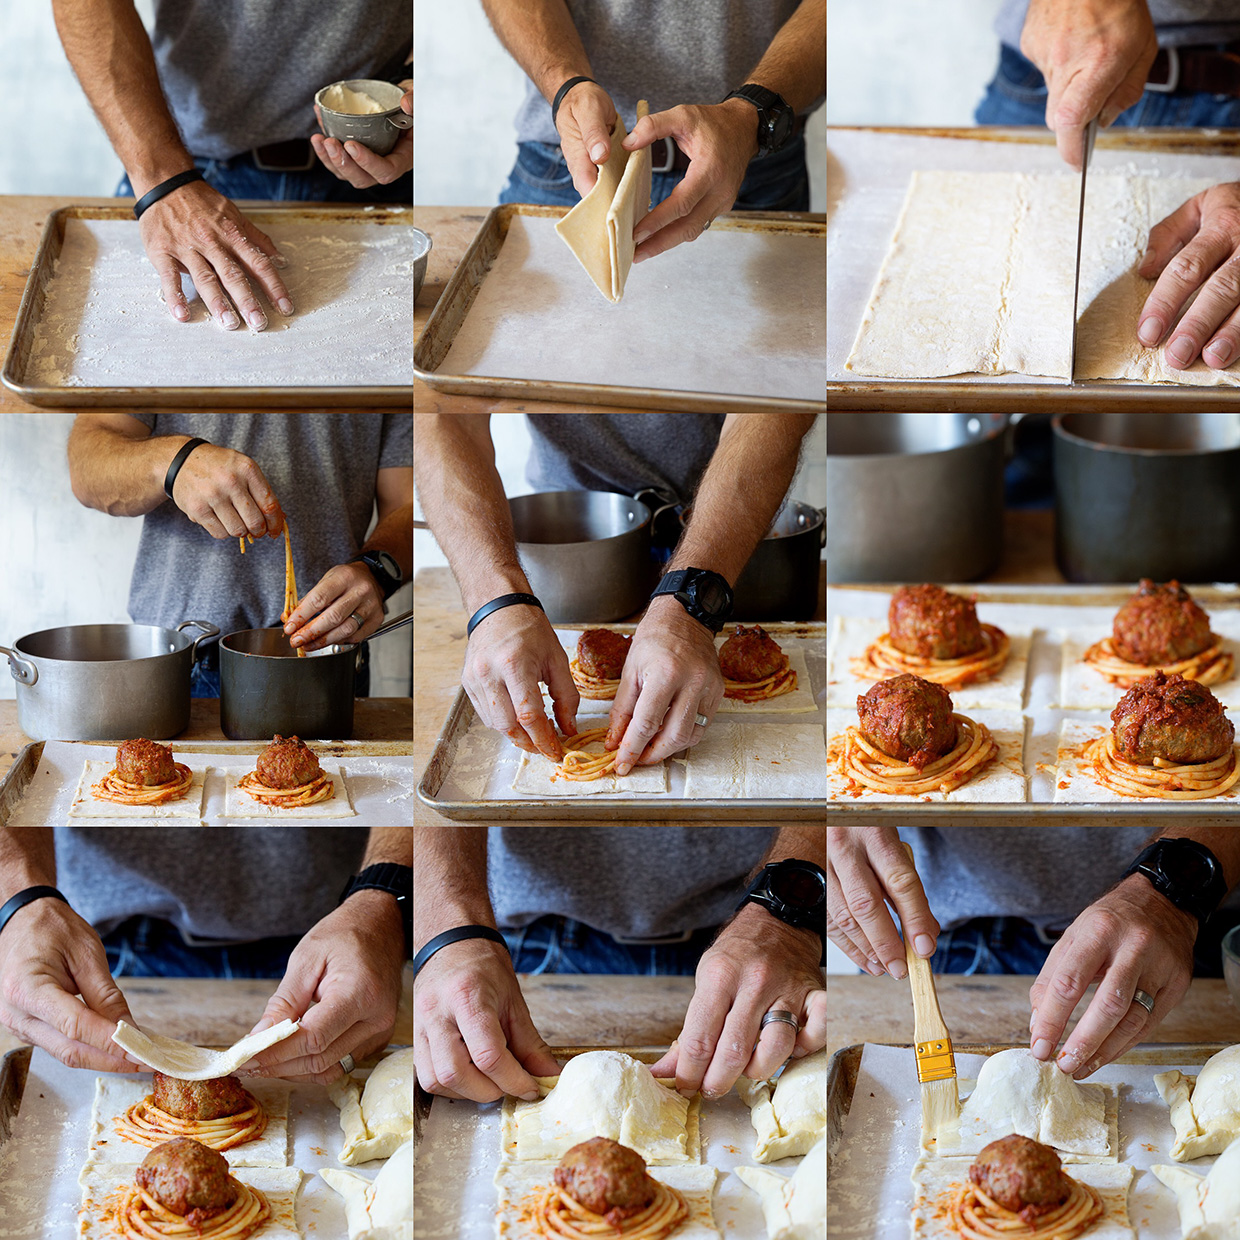 spaghetti-and-meatball-hand-pies-process-shots-via-real-food-by-dad